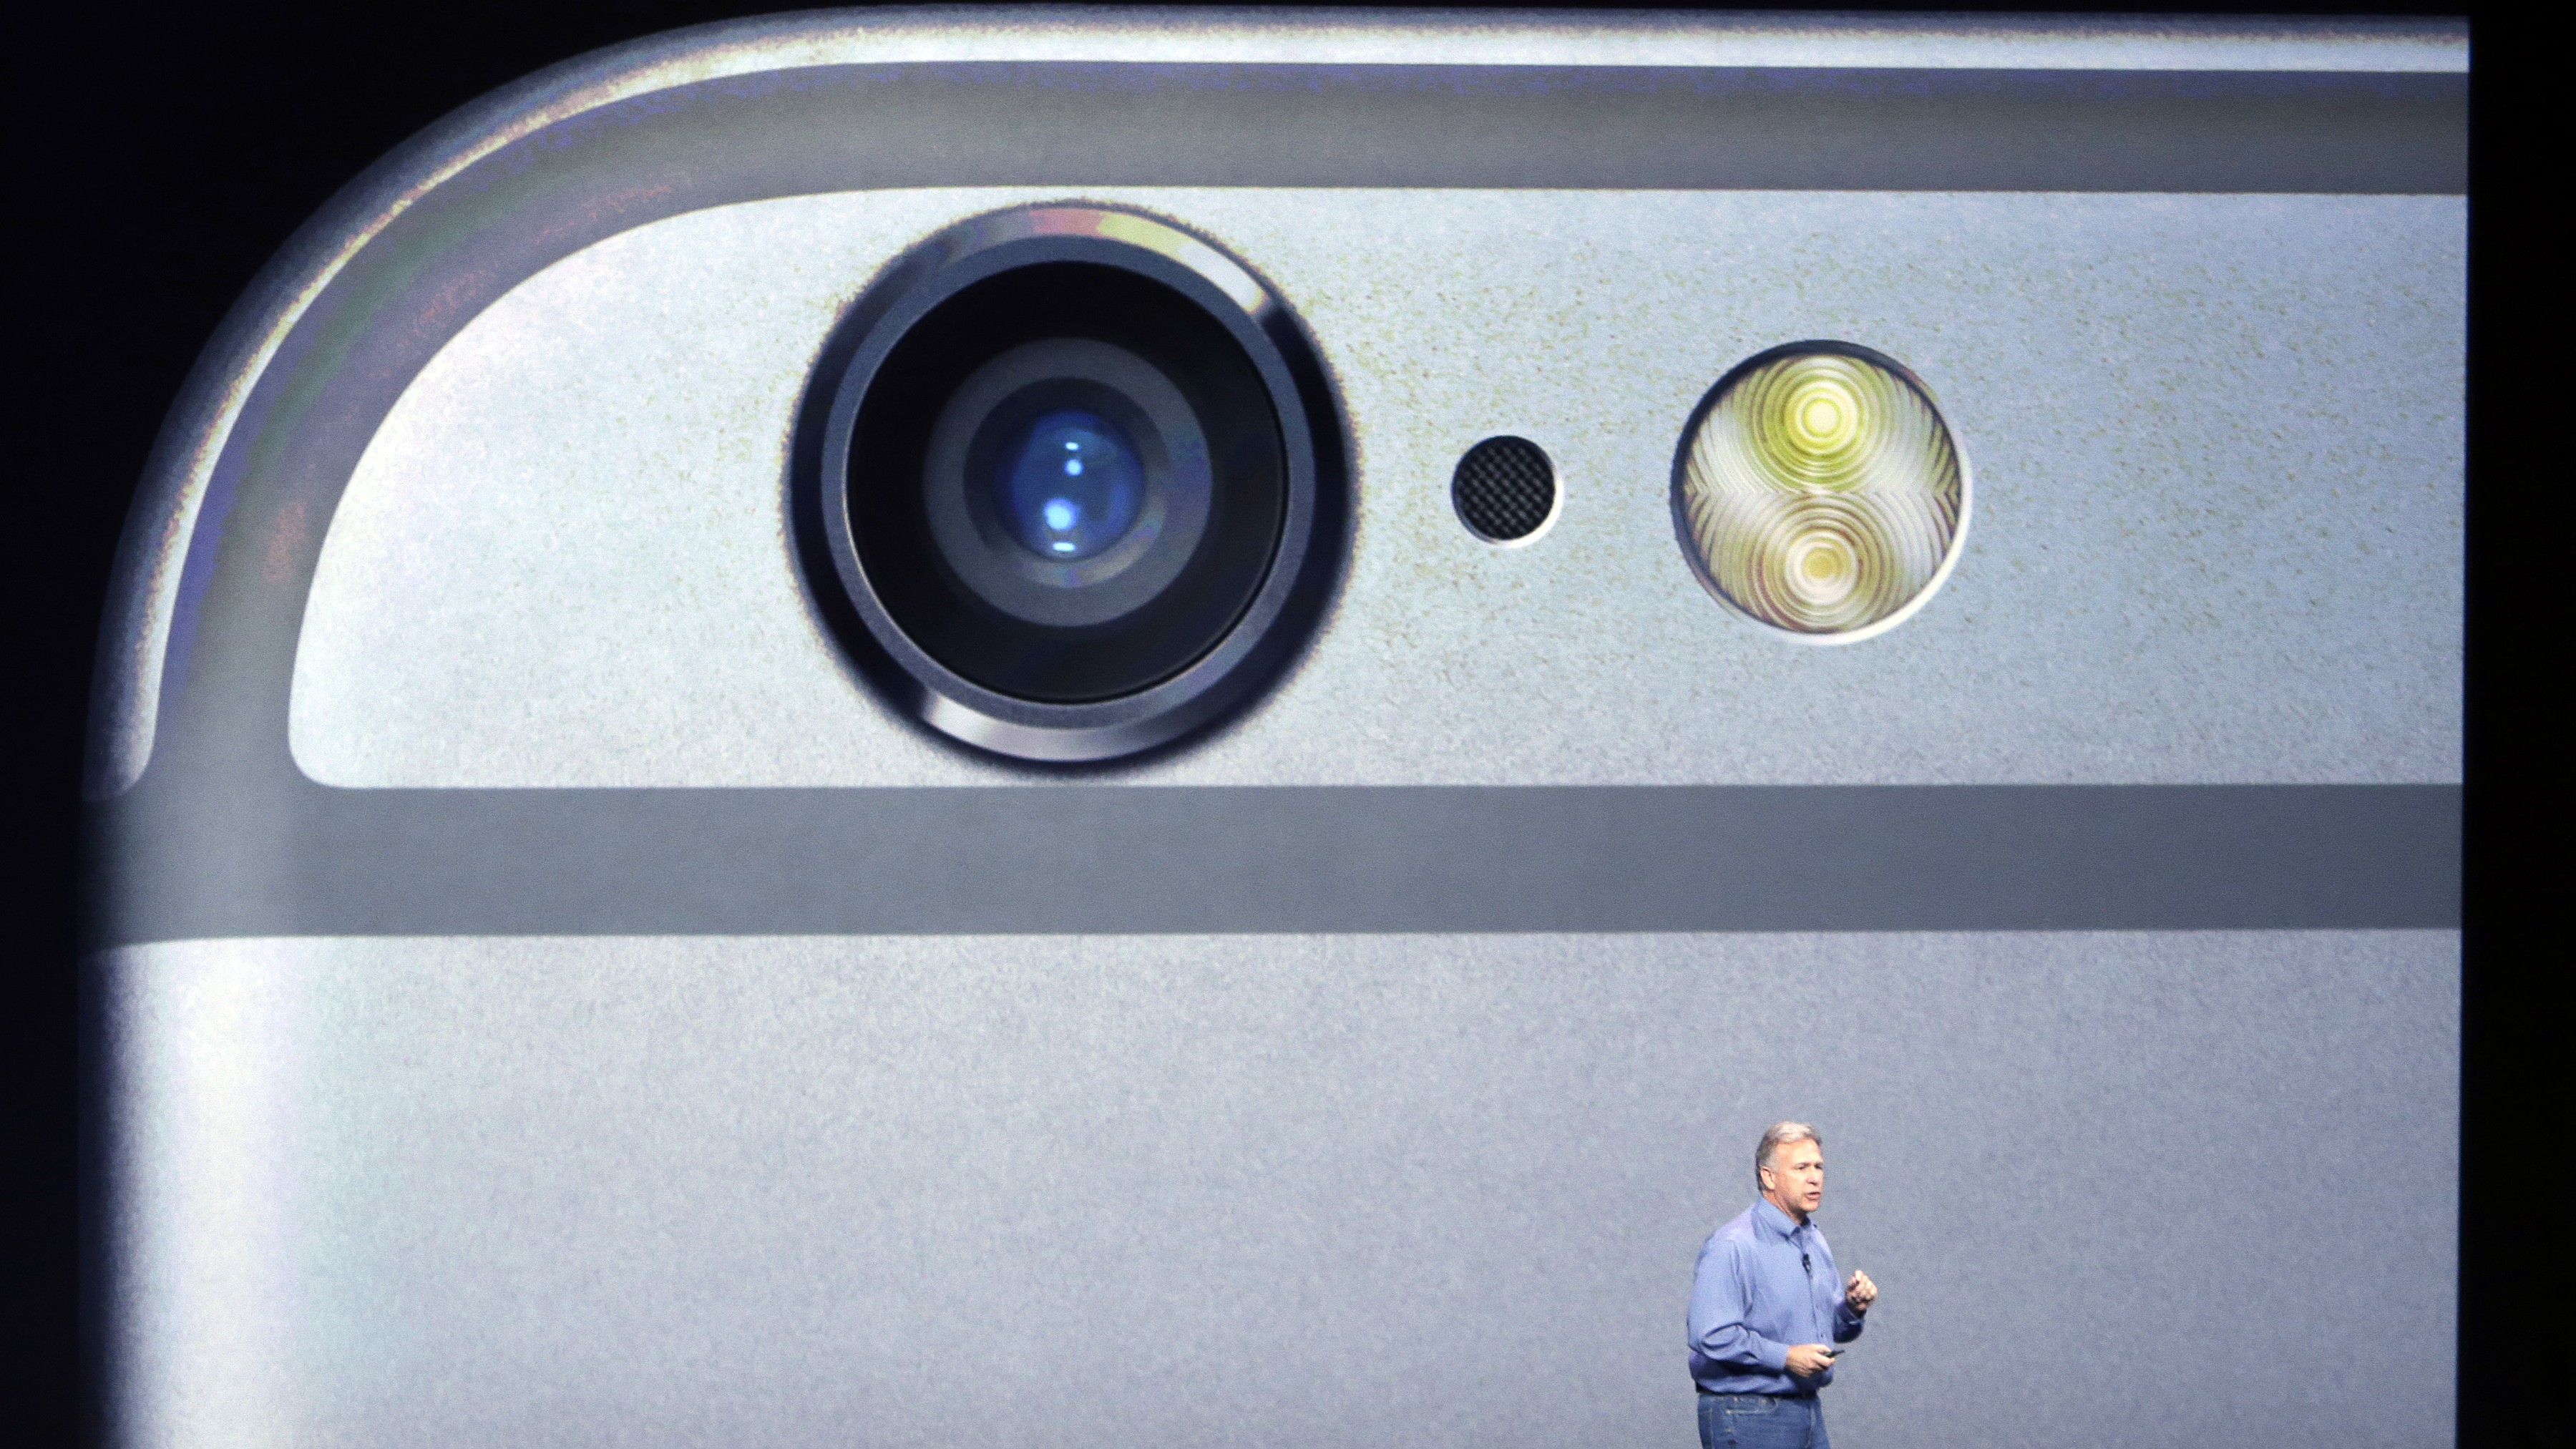 Apple's Phil Schiller with the iPhone 6